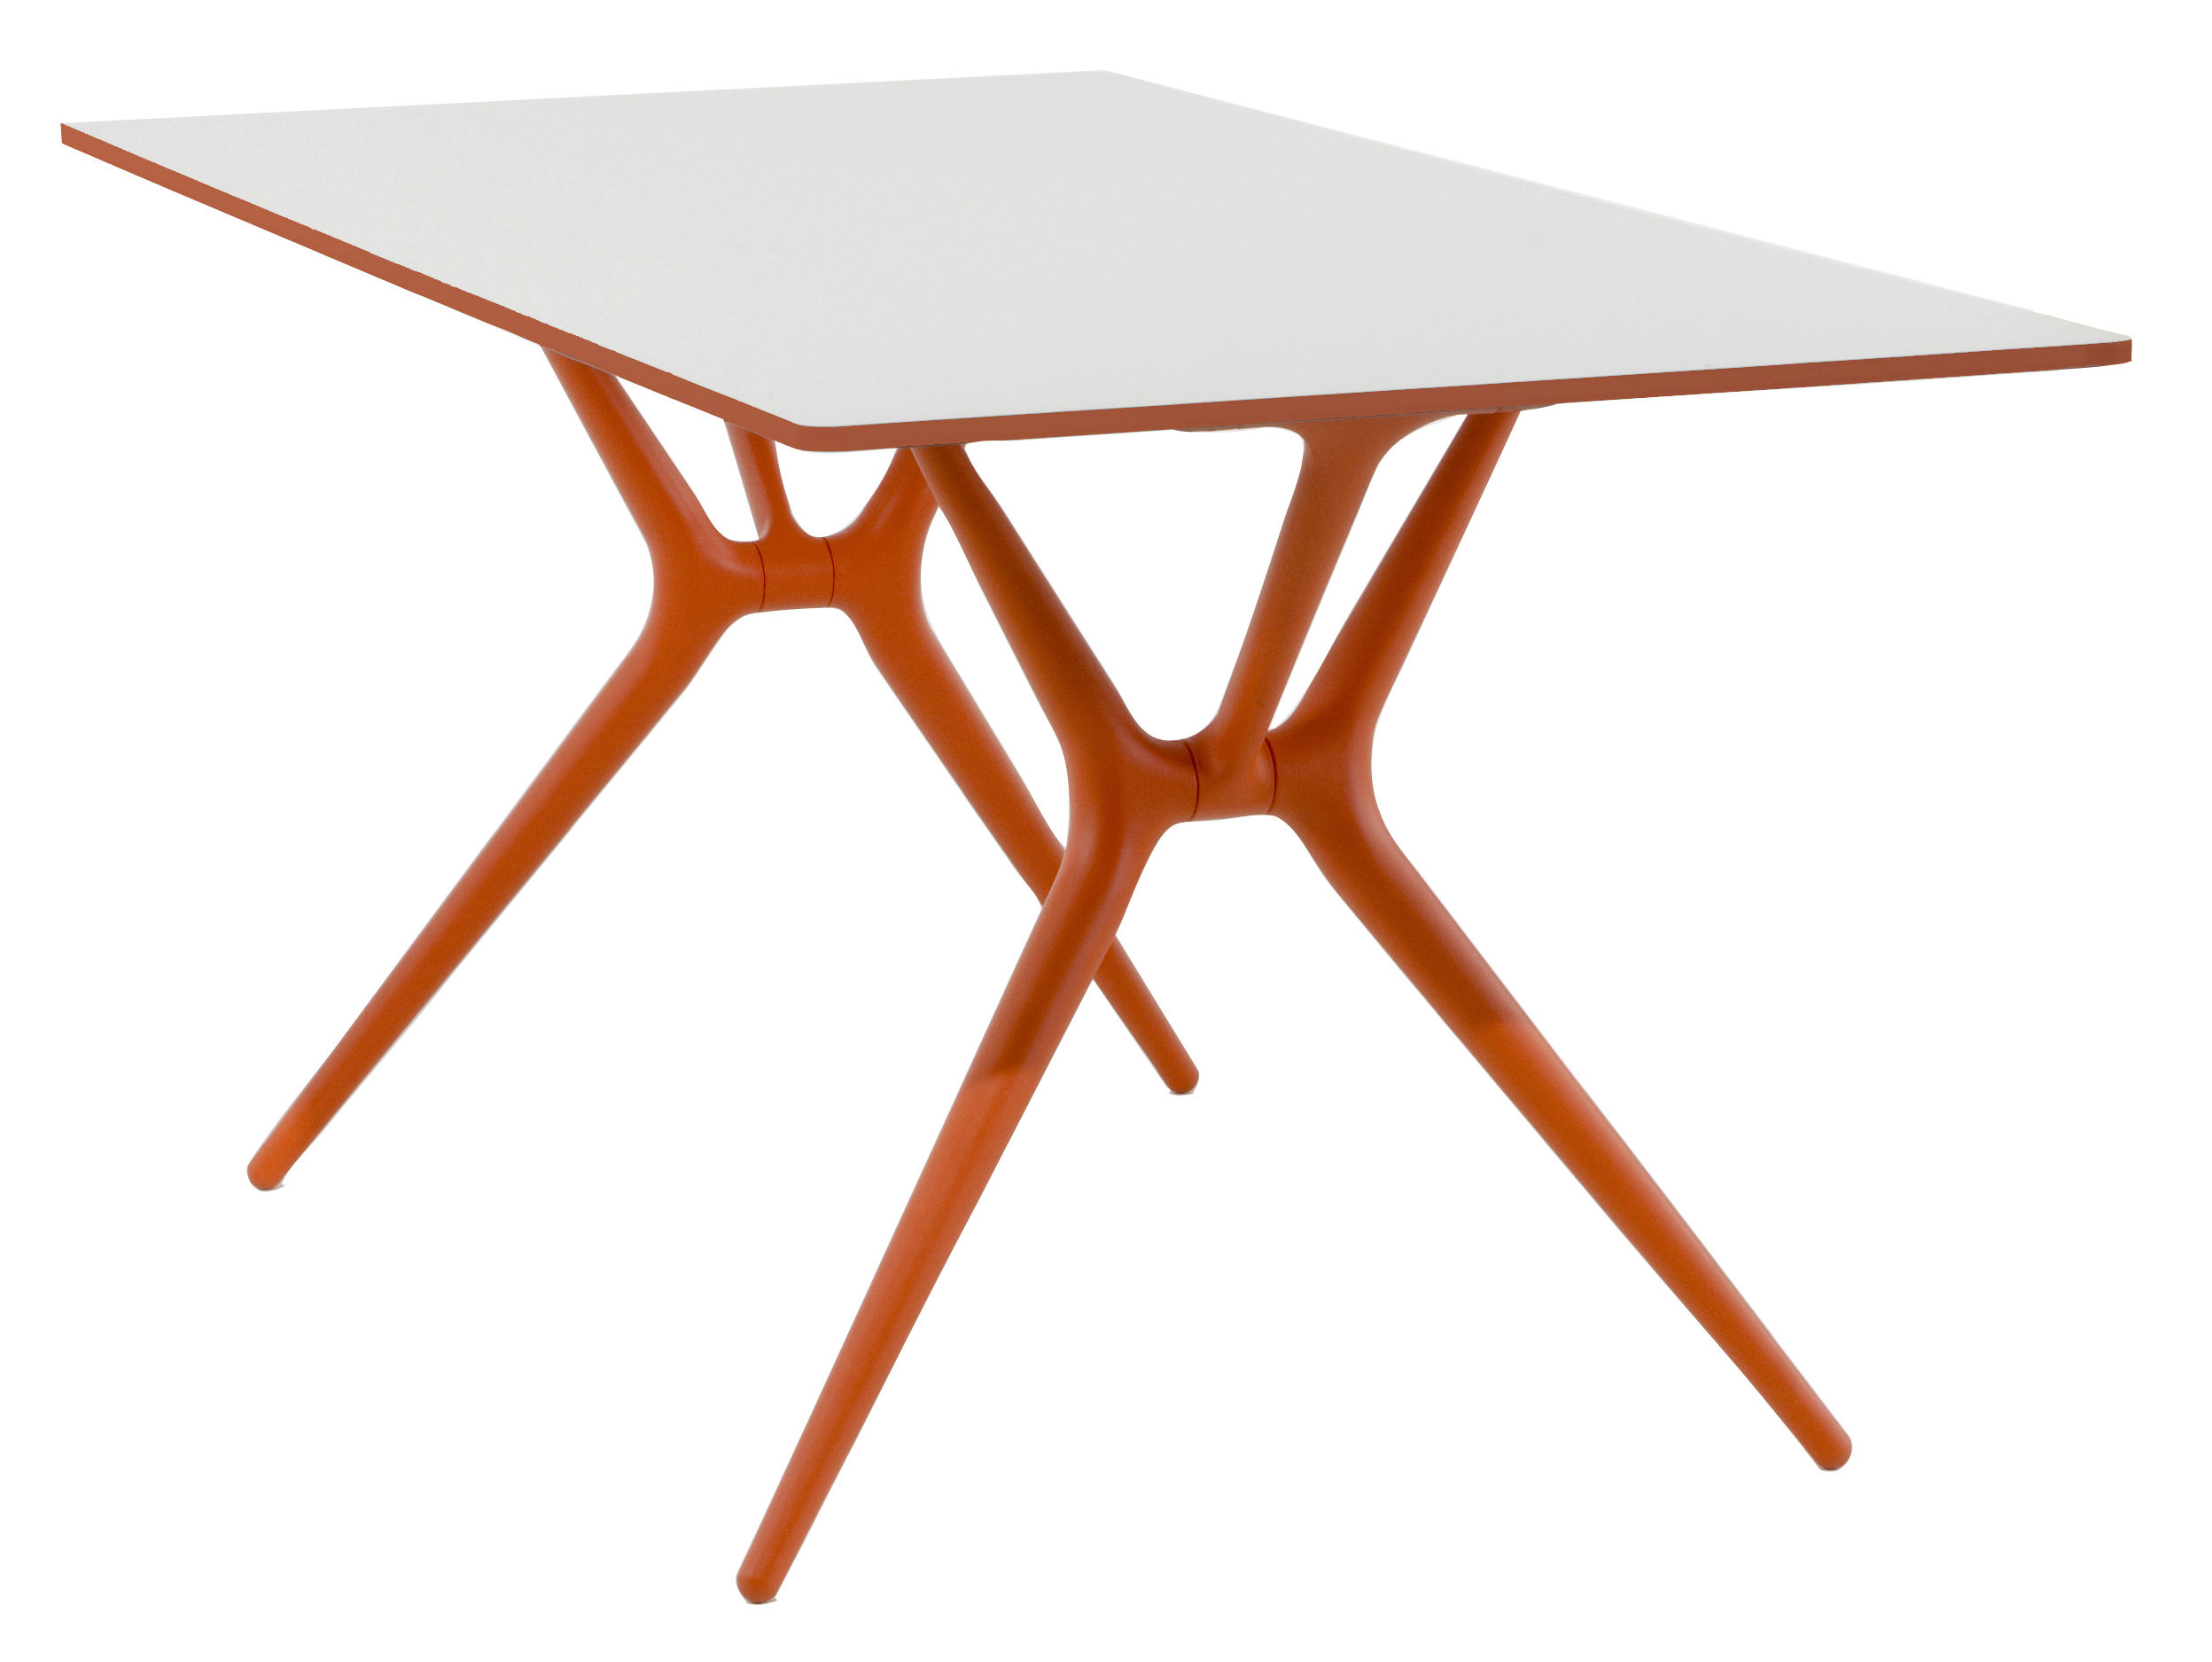 Table 200 Spoon Foldable Table 200 X 90 Cm By Kartell